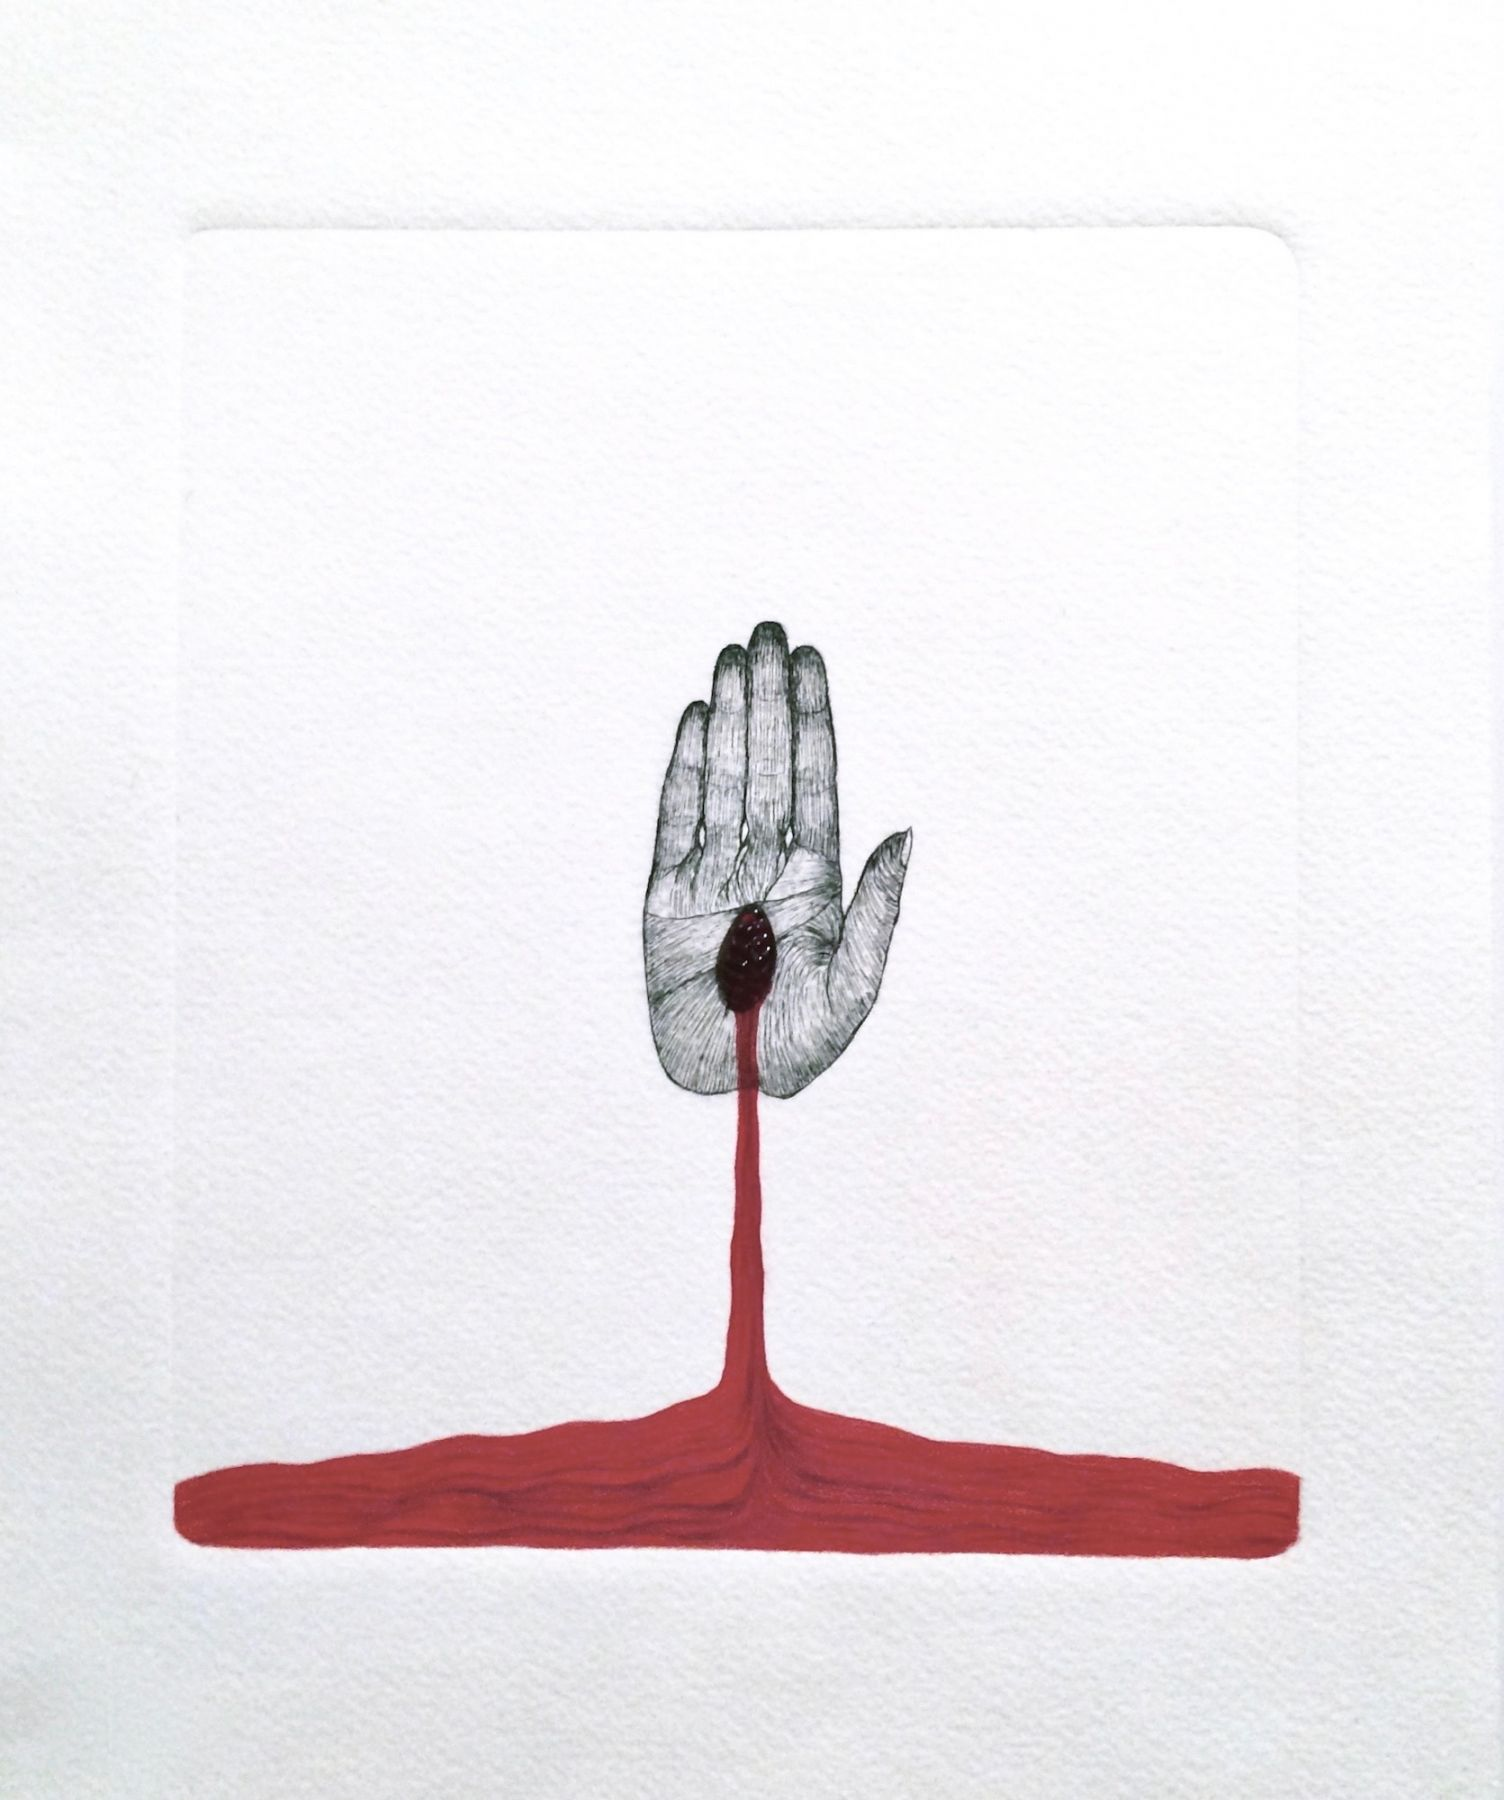 ESPERANZA CORTÉS, The Giving Hand, 2016